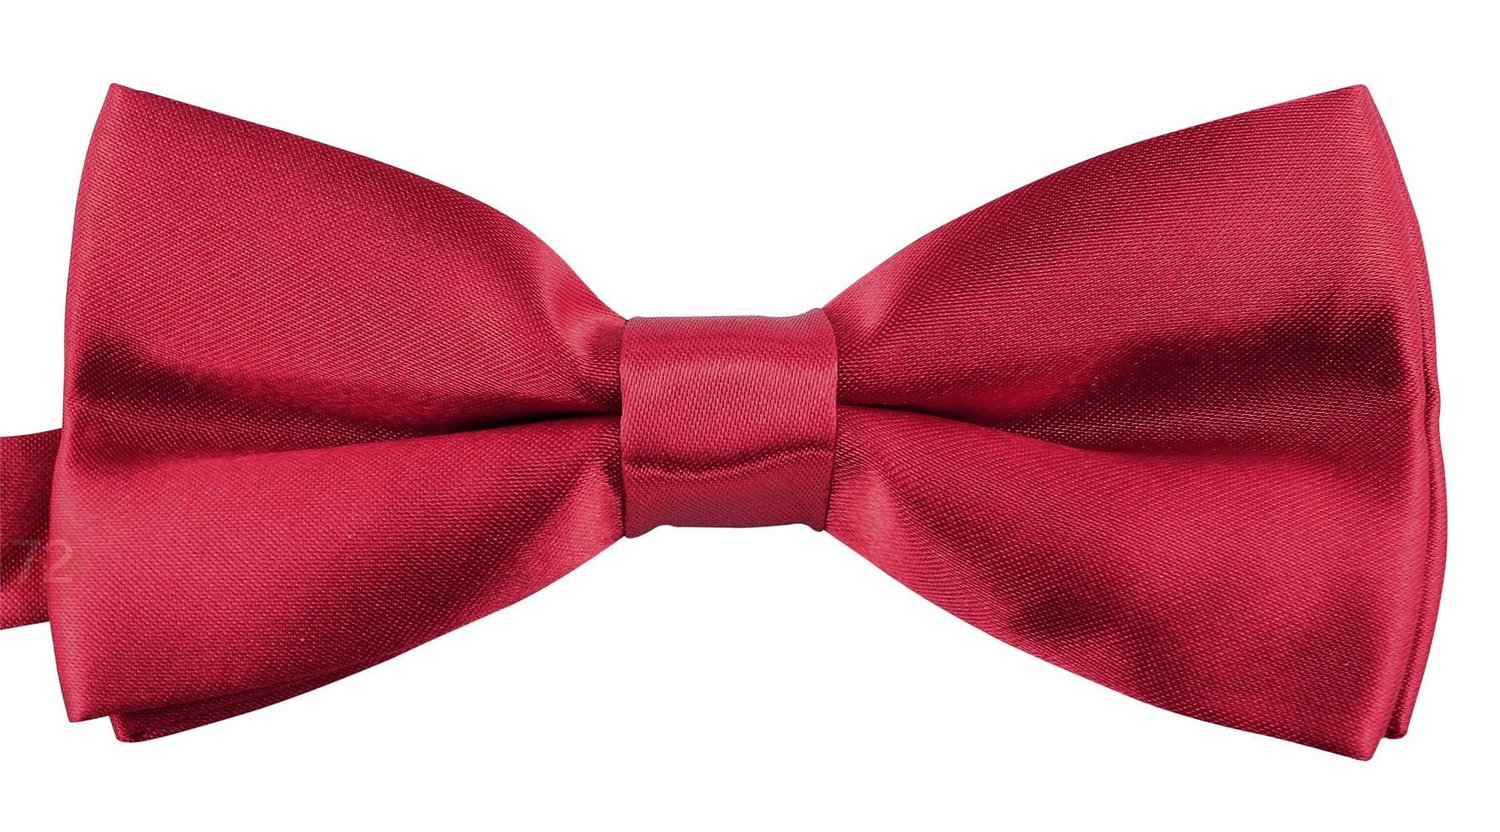 Bow Ties For Men Banded Pre Tied Formal Wedding Bowties Storage Gift Box - Crimson